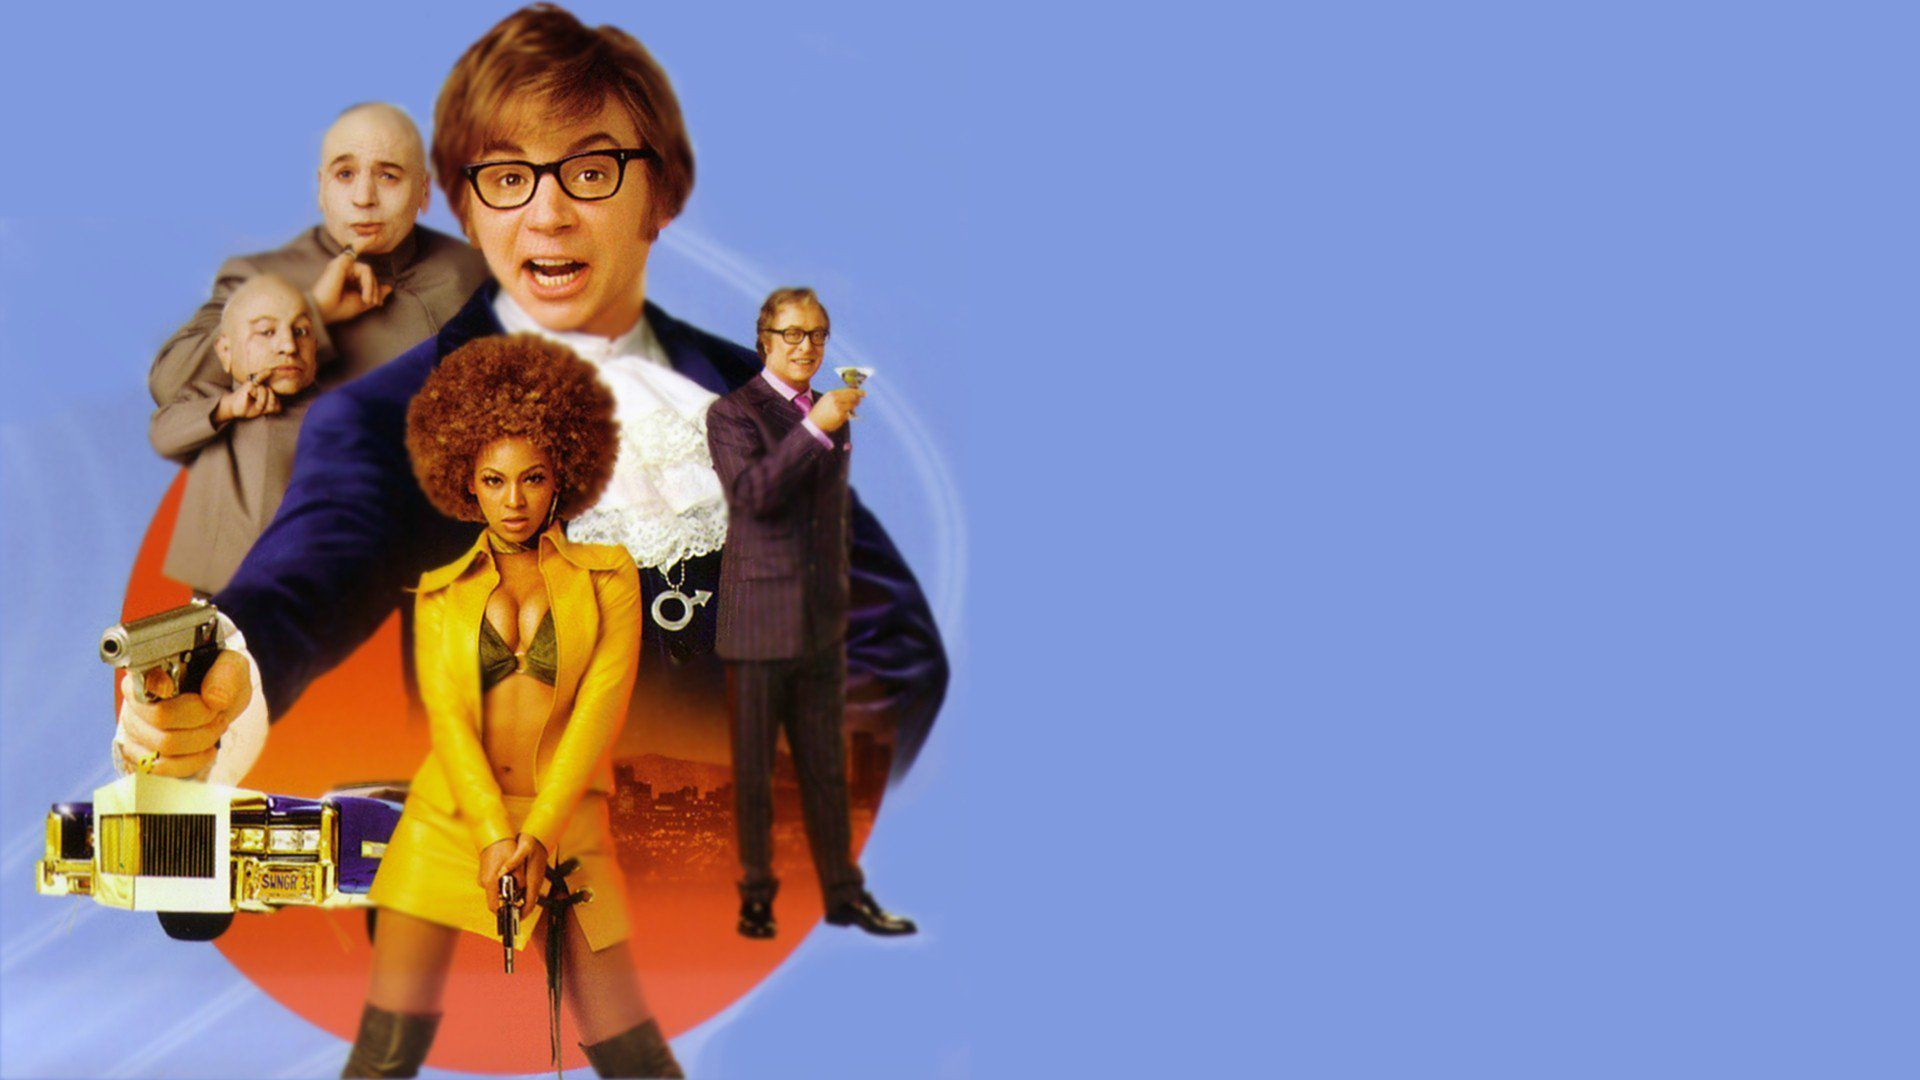 Austin Powers Tumblr